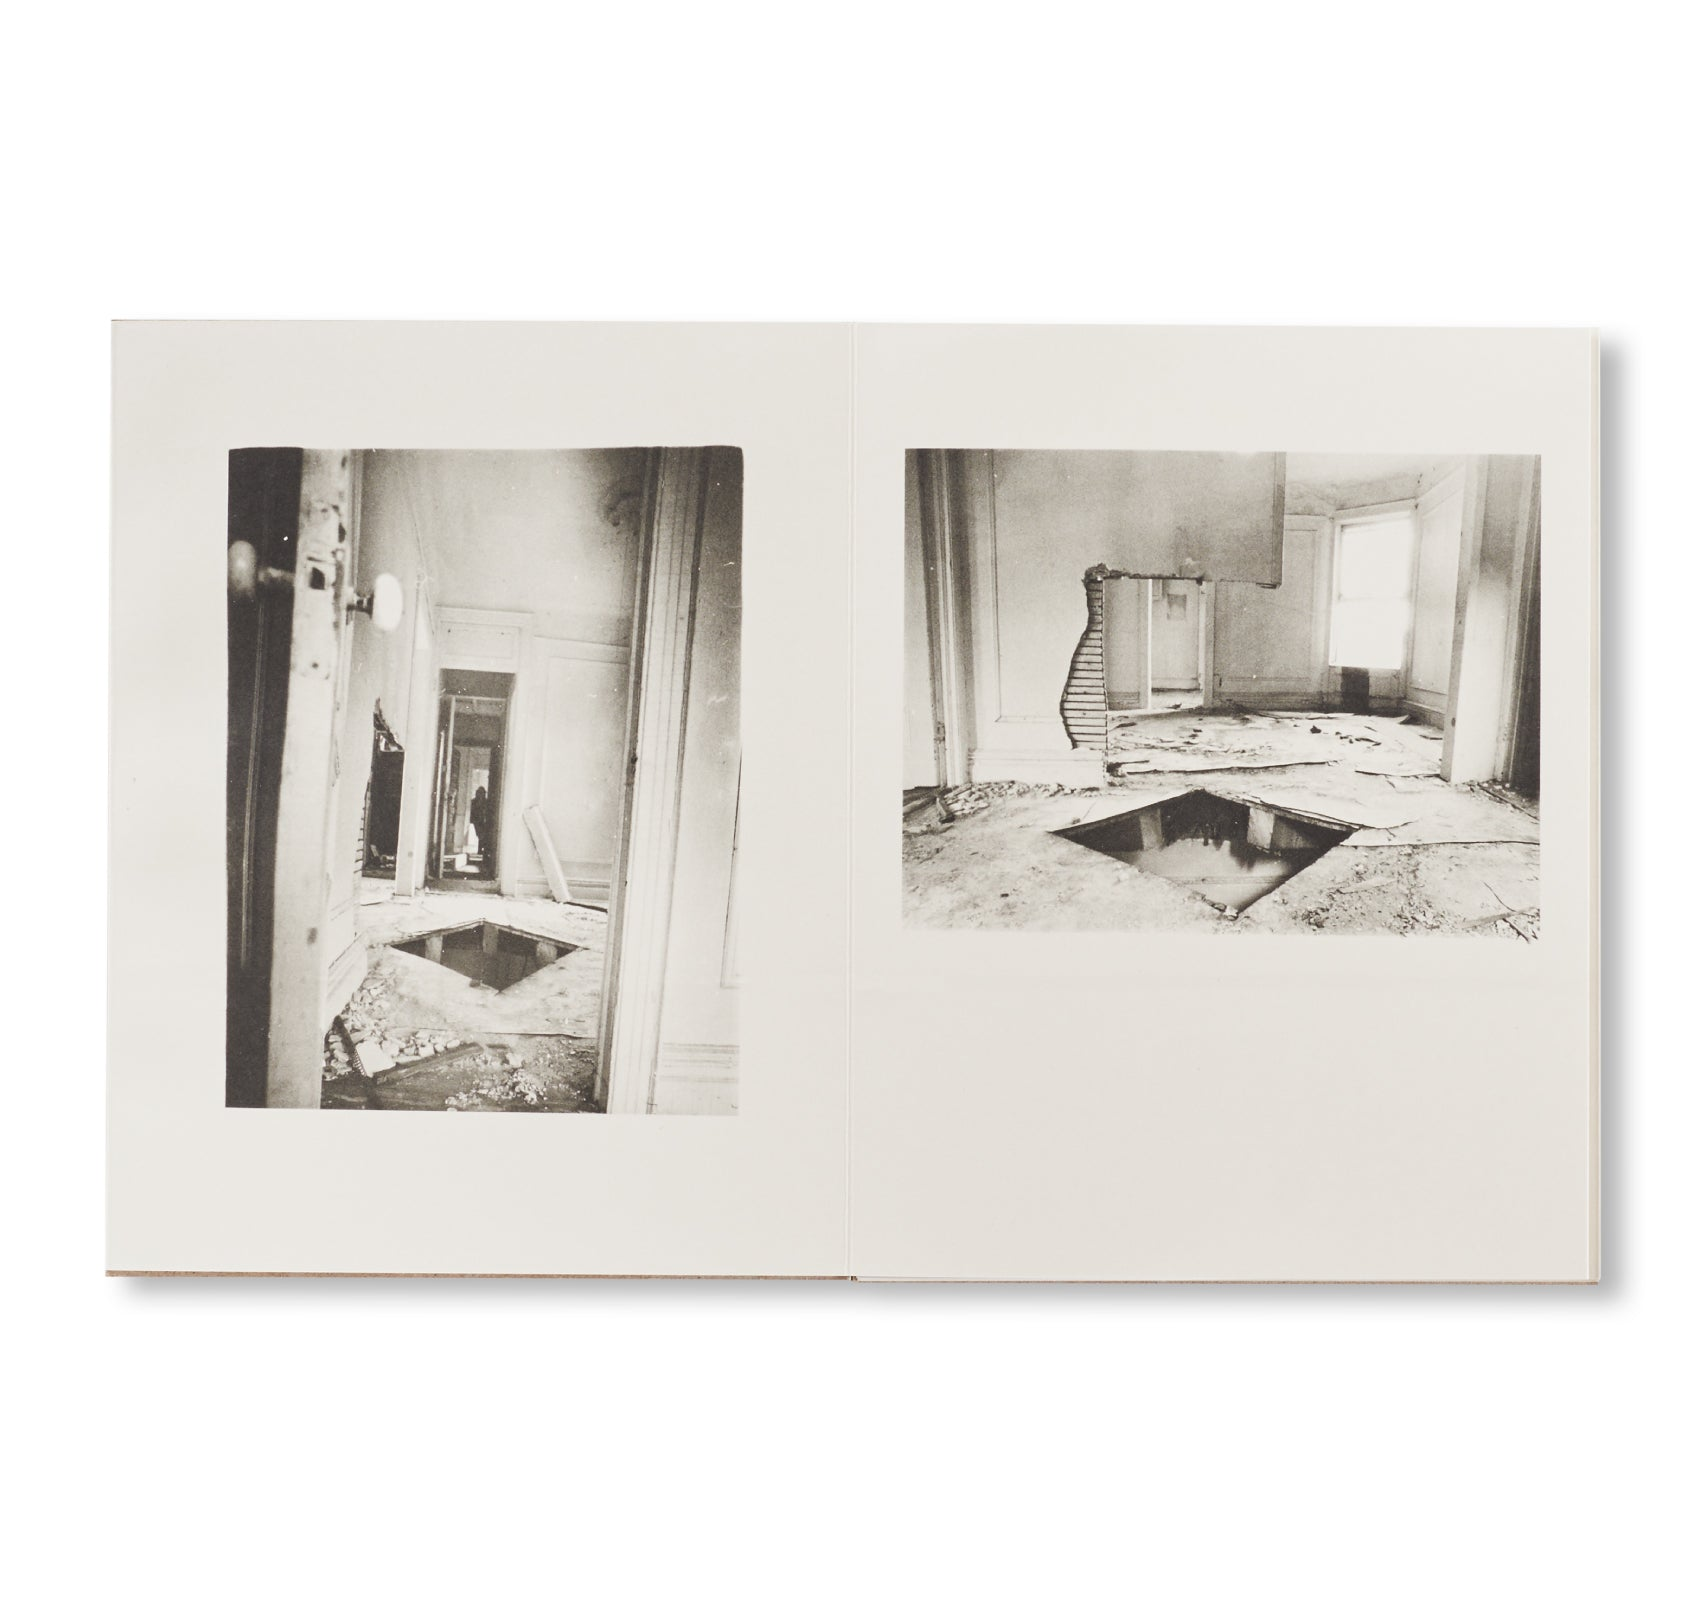 HEIDI BUCHER & GORDON MATTA-CLARK by Heidi Bucher, Gordon Matta-Clark